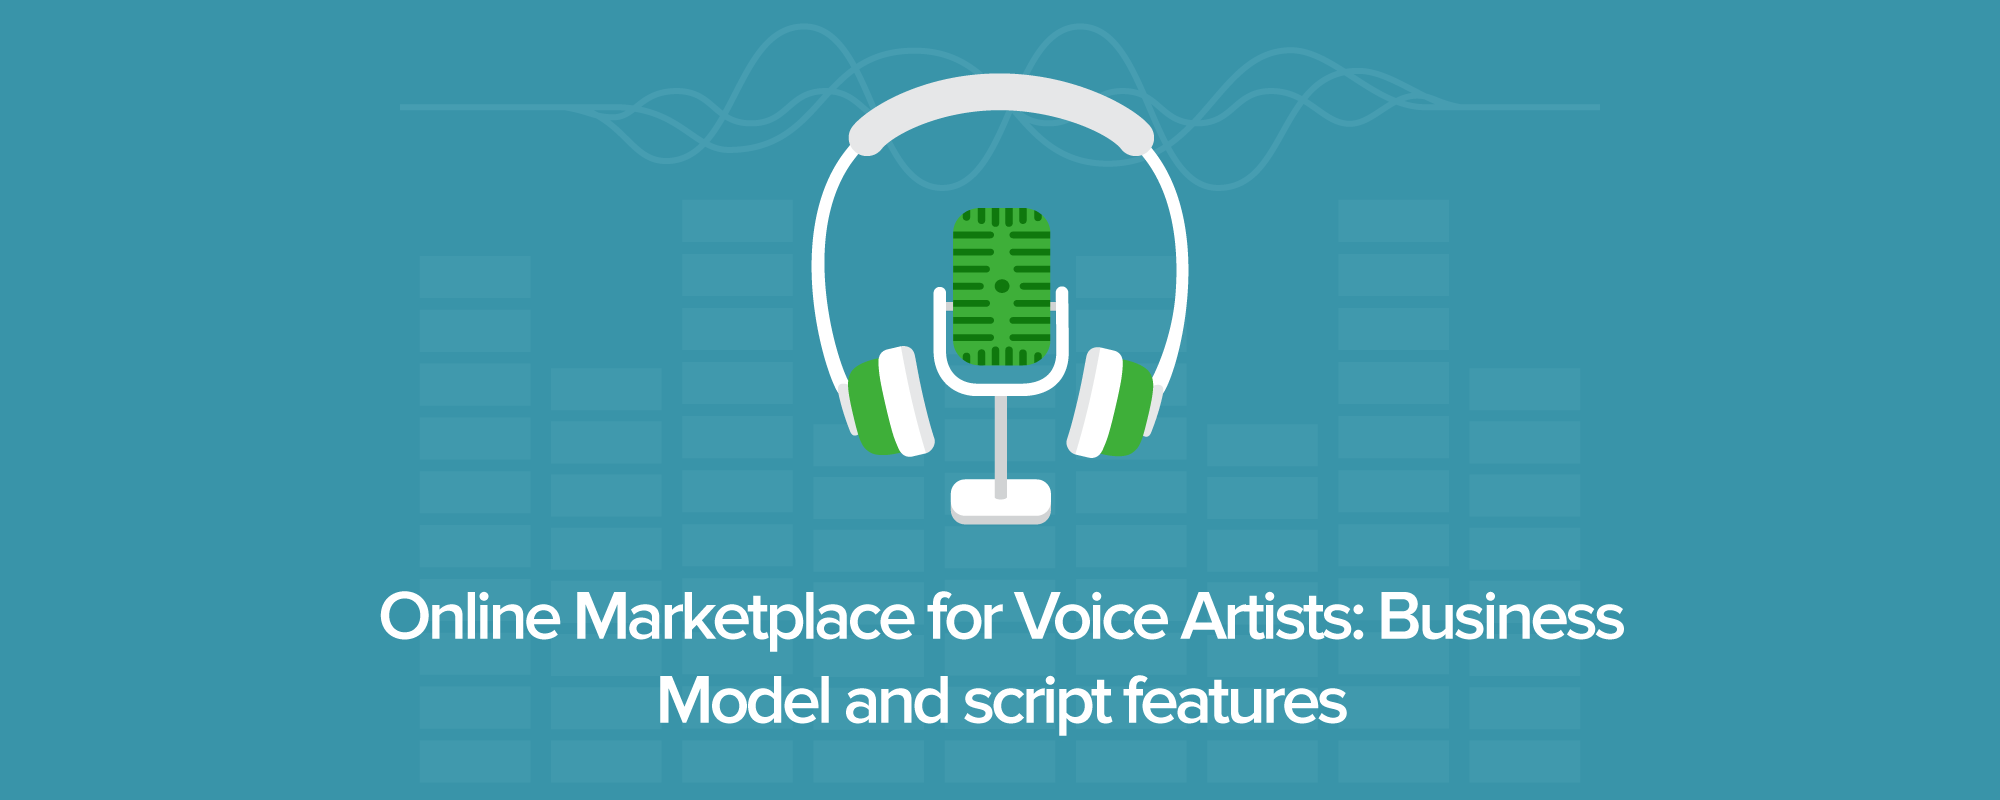 Start Marketplace for Voice Artists with Top Script Features